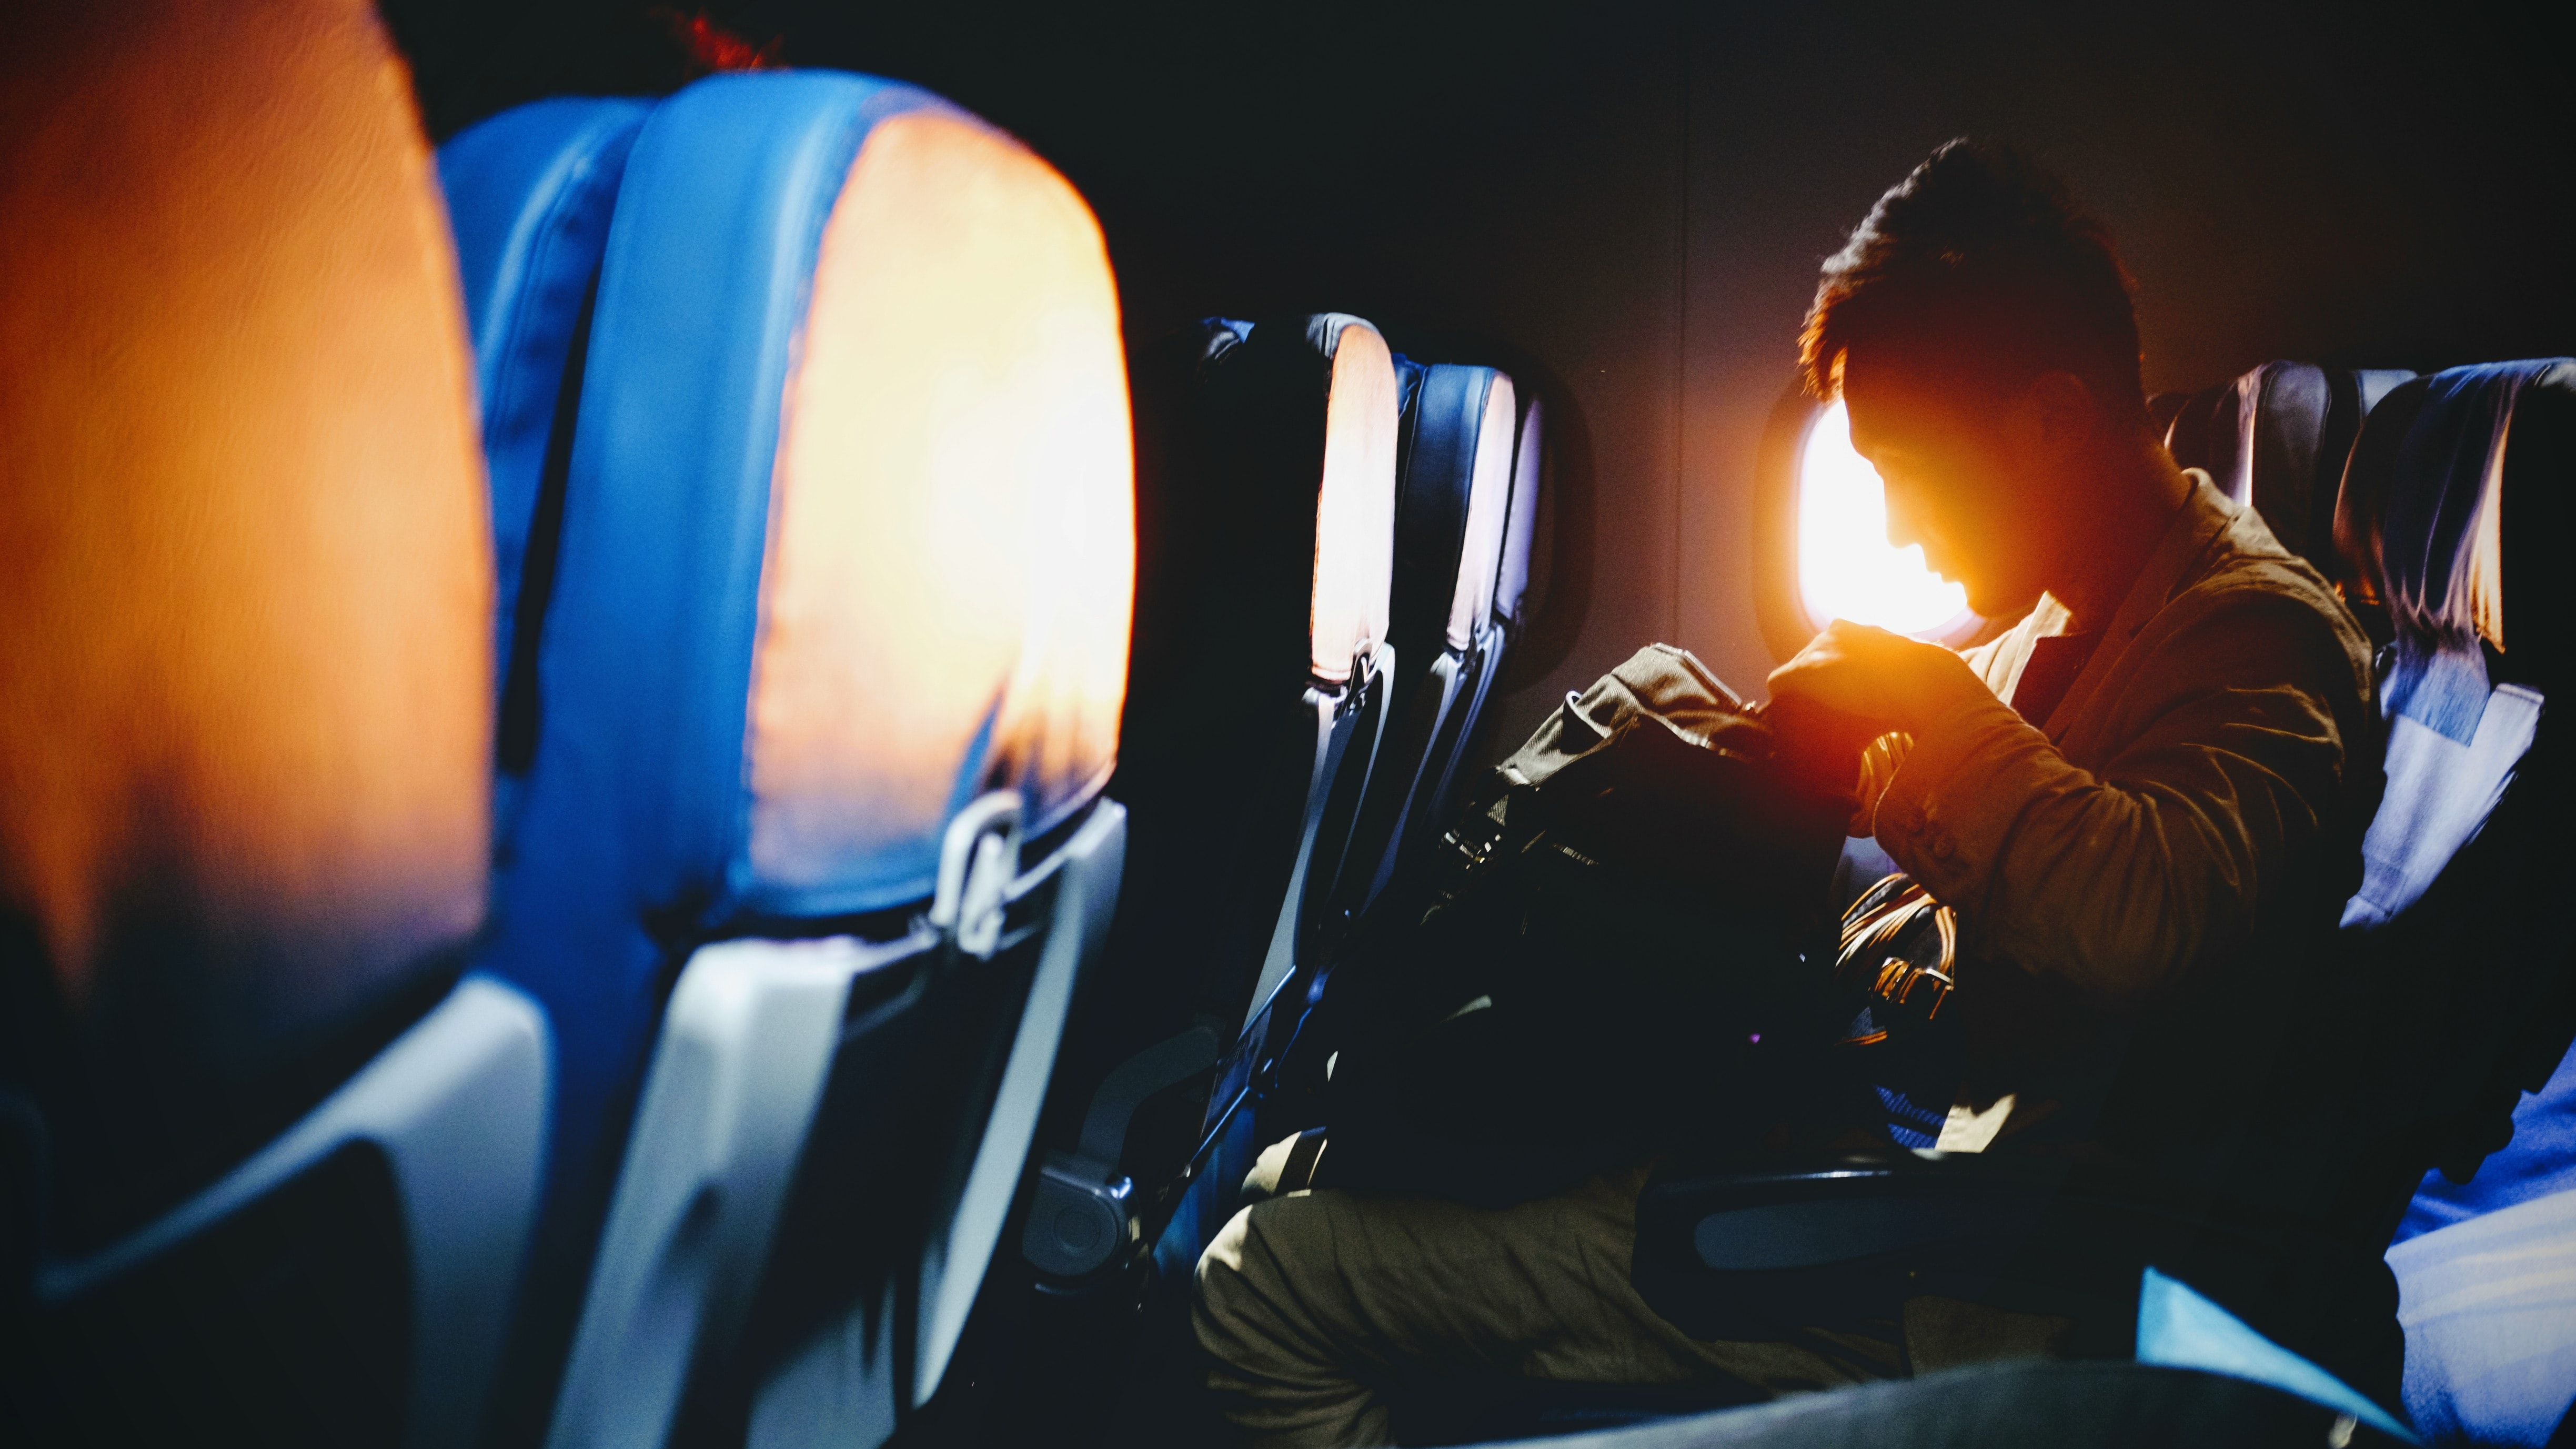 A man in an airplane seat looking into his backpack as setting sun shines through the window